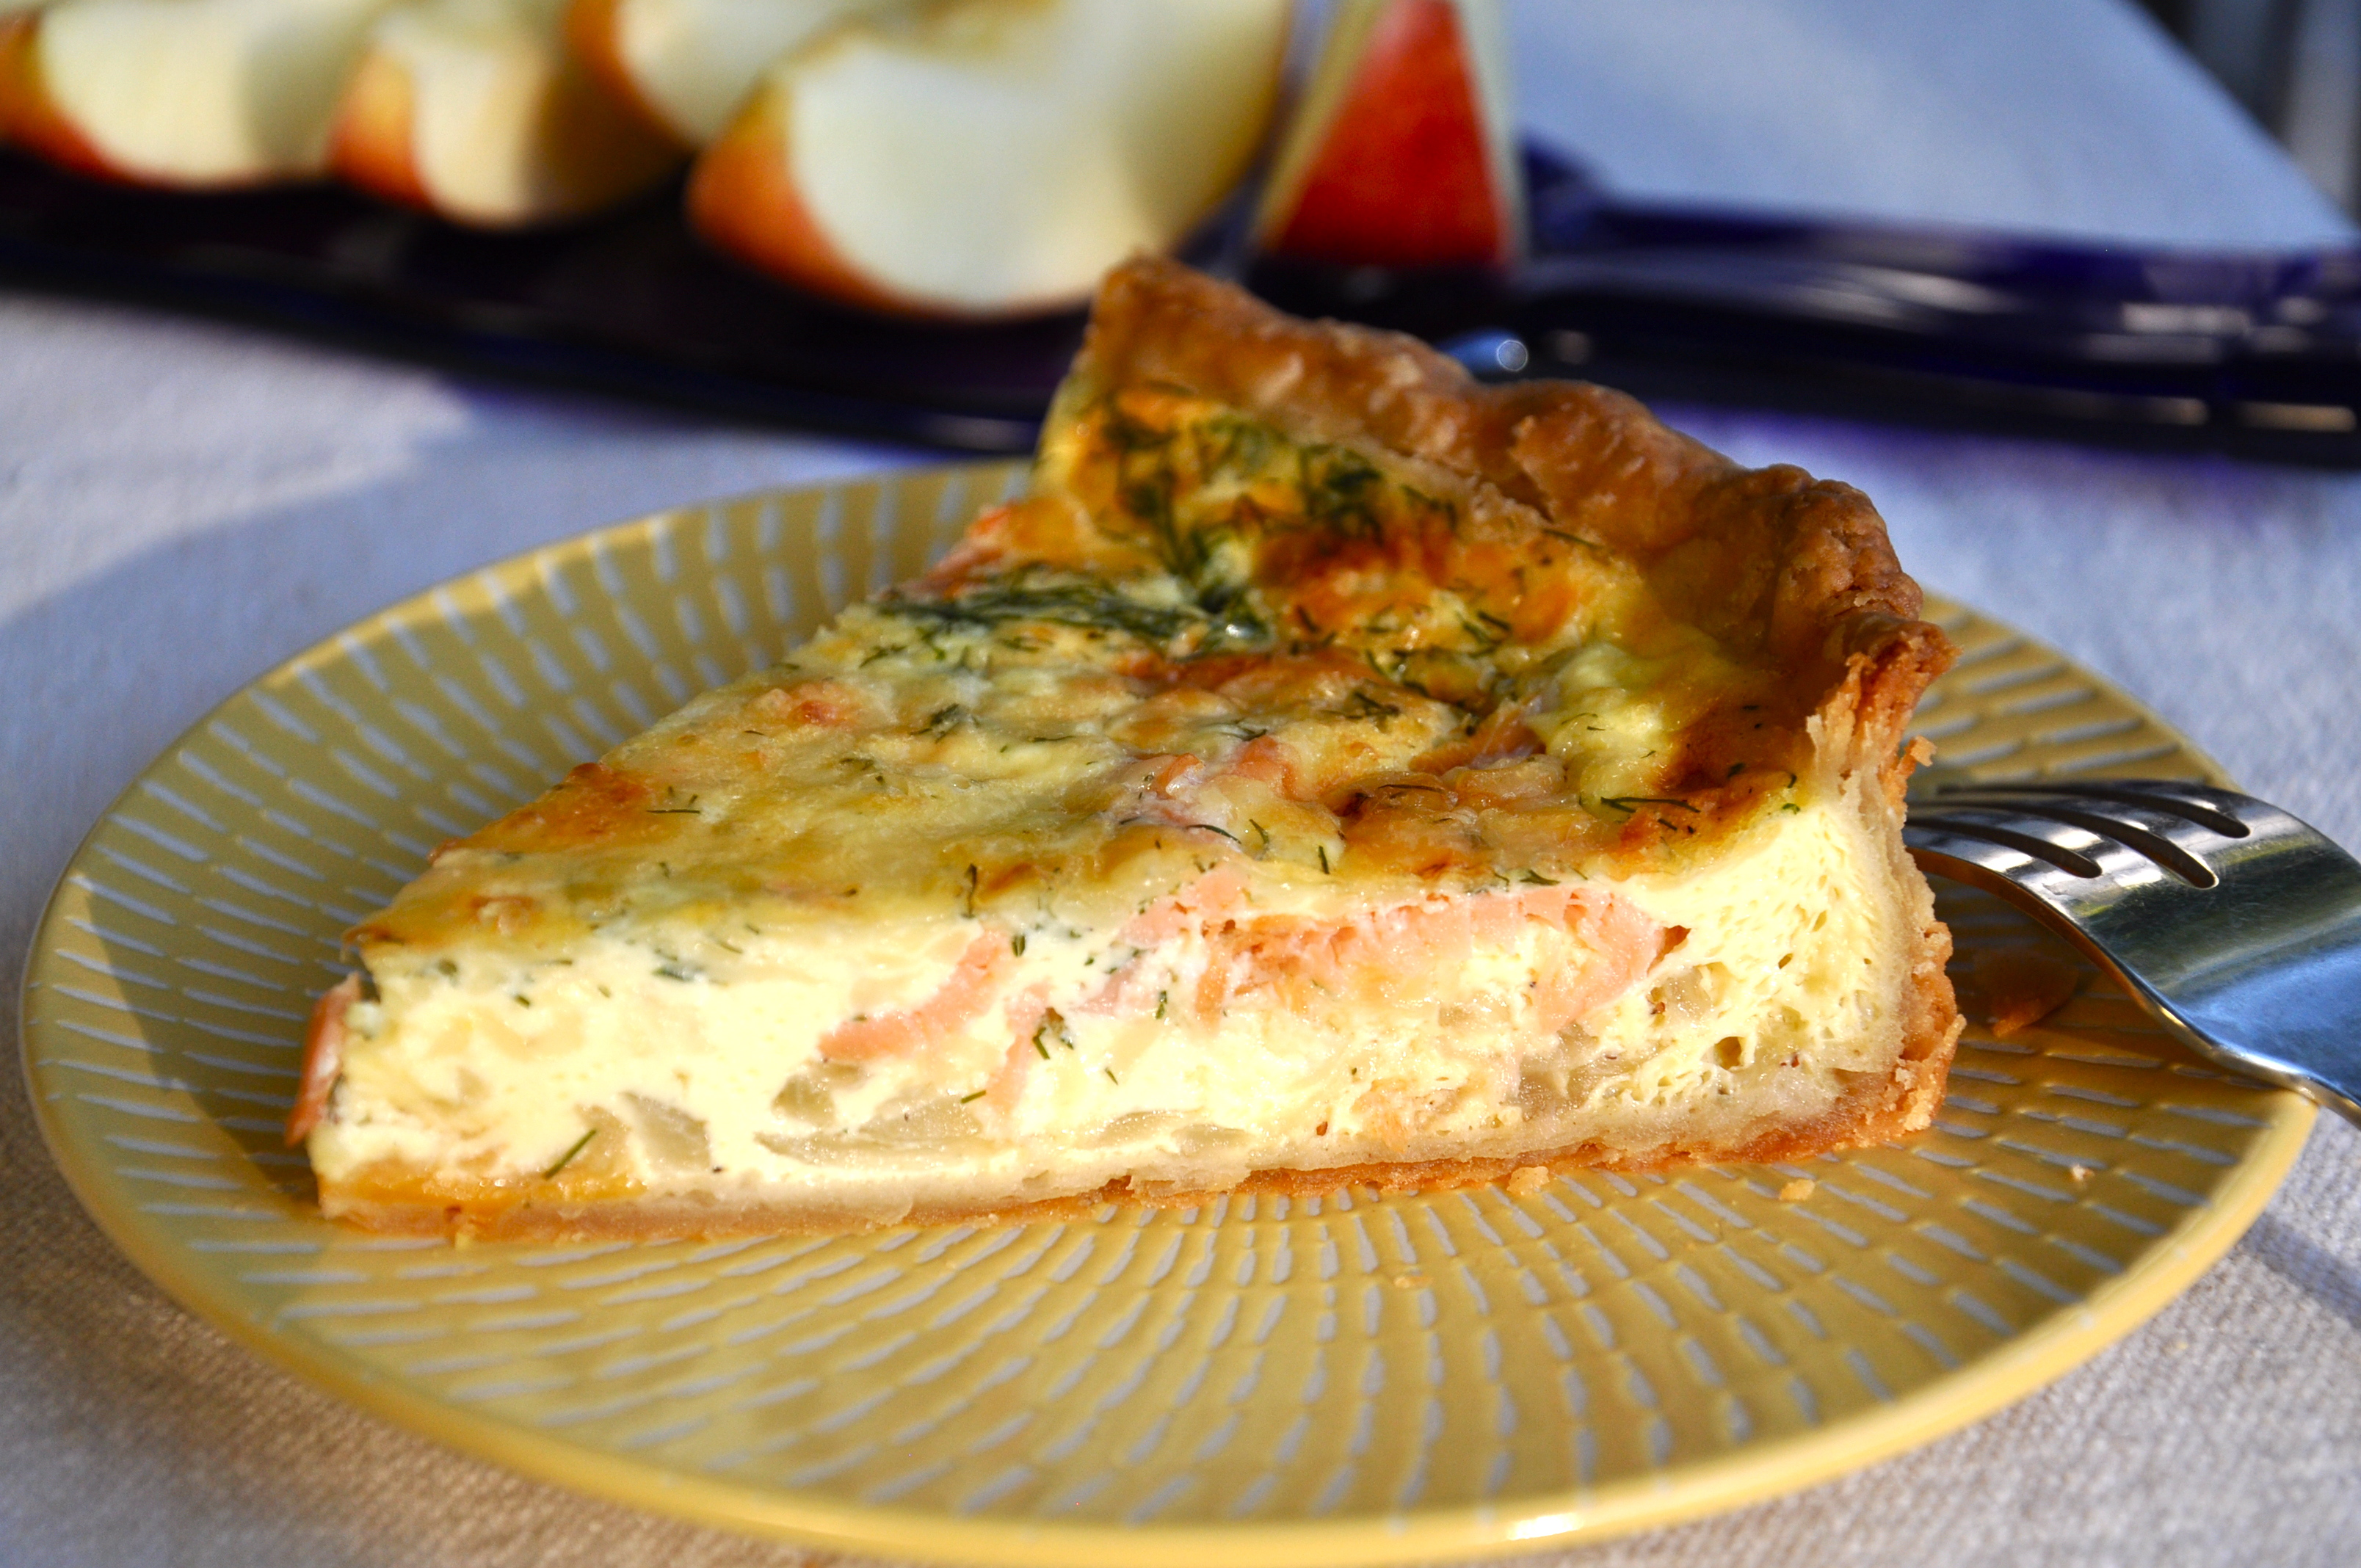 Savory Smoked Salmon Dill And Gouda Pie From Ken Haedrich Dean